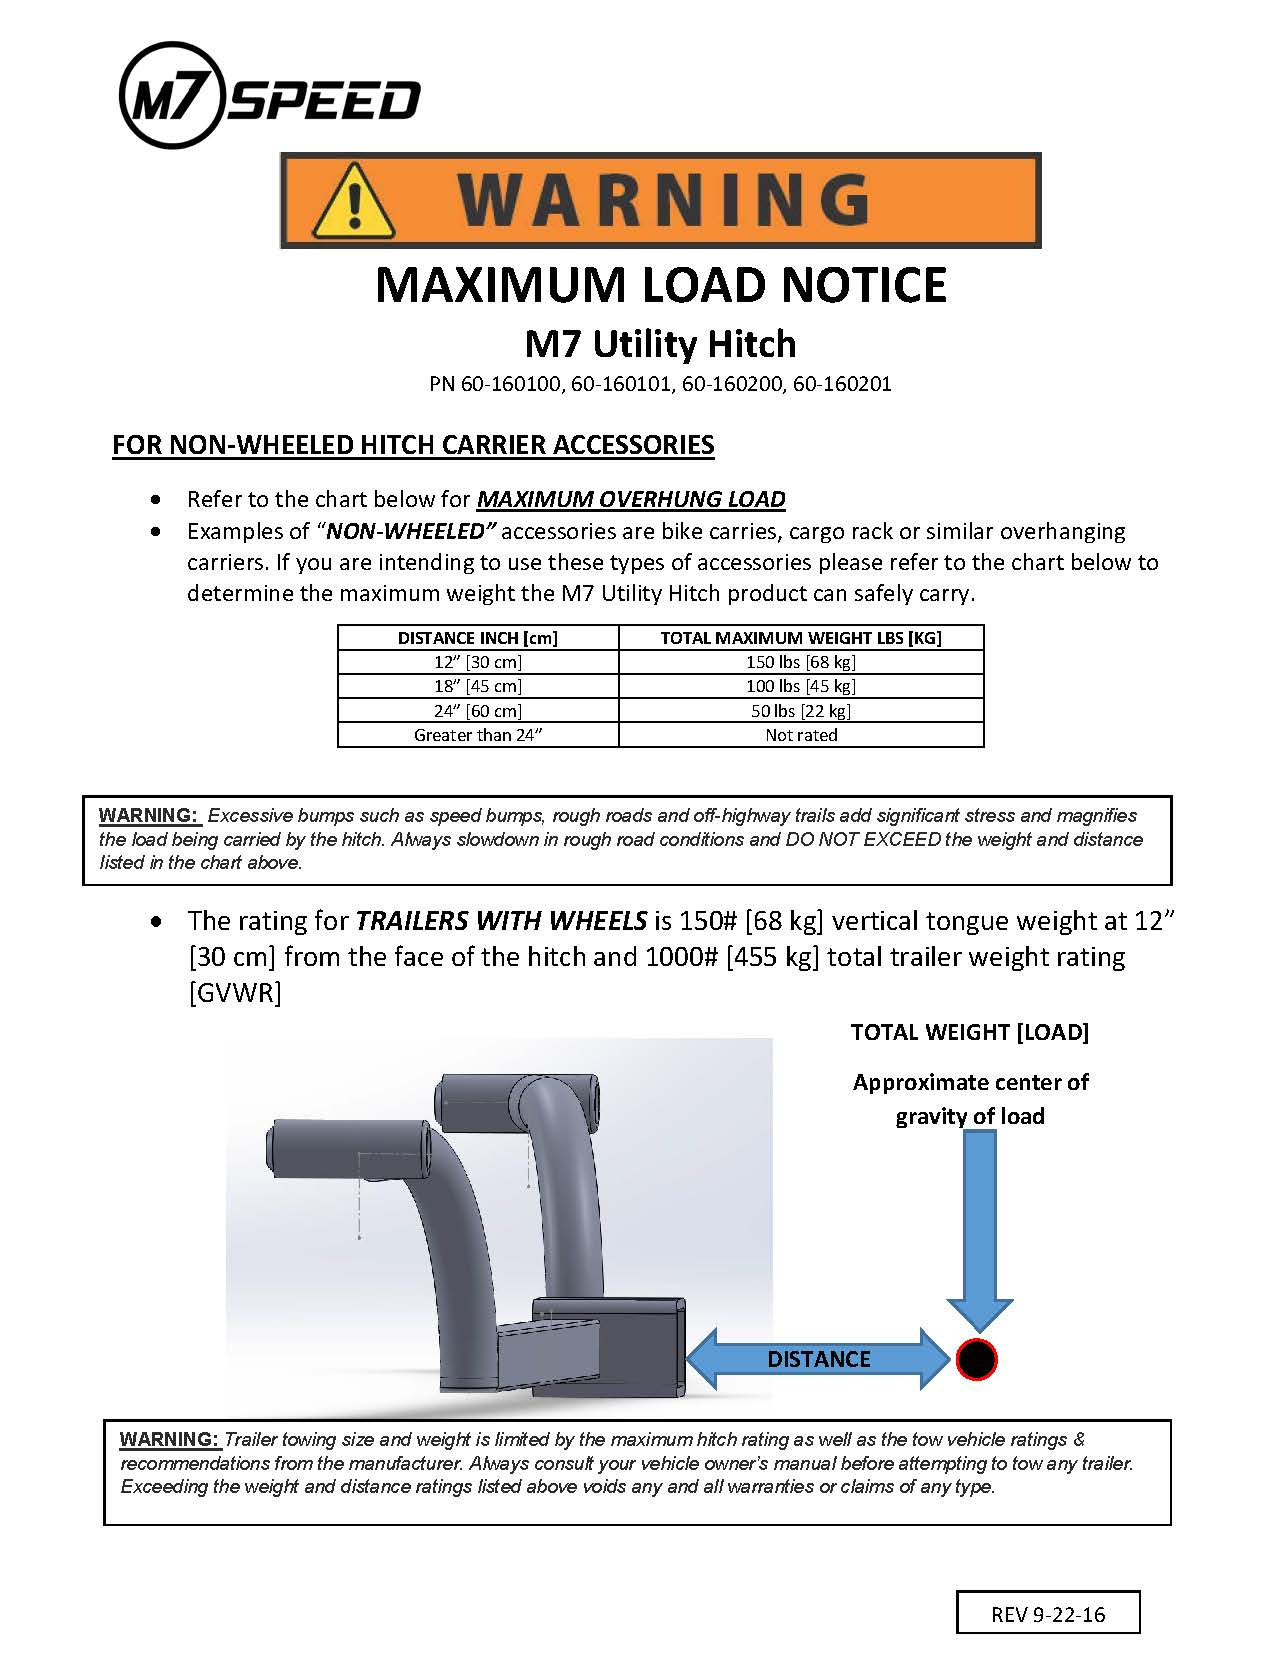 Load Notice Sheet 60-160200